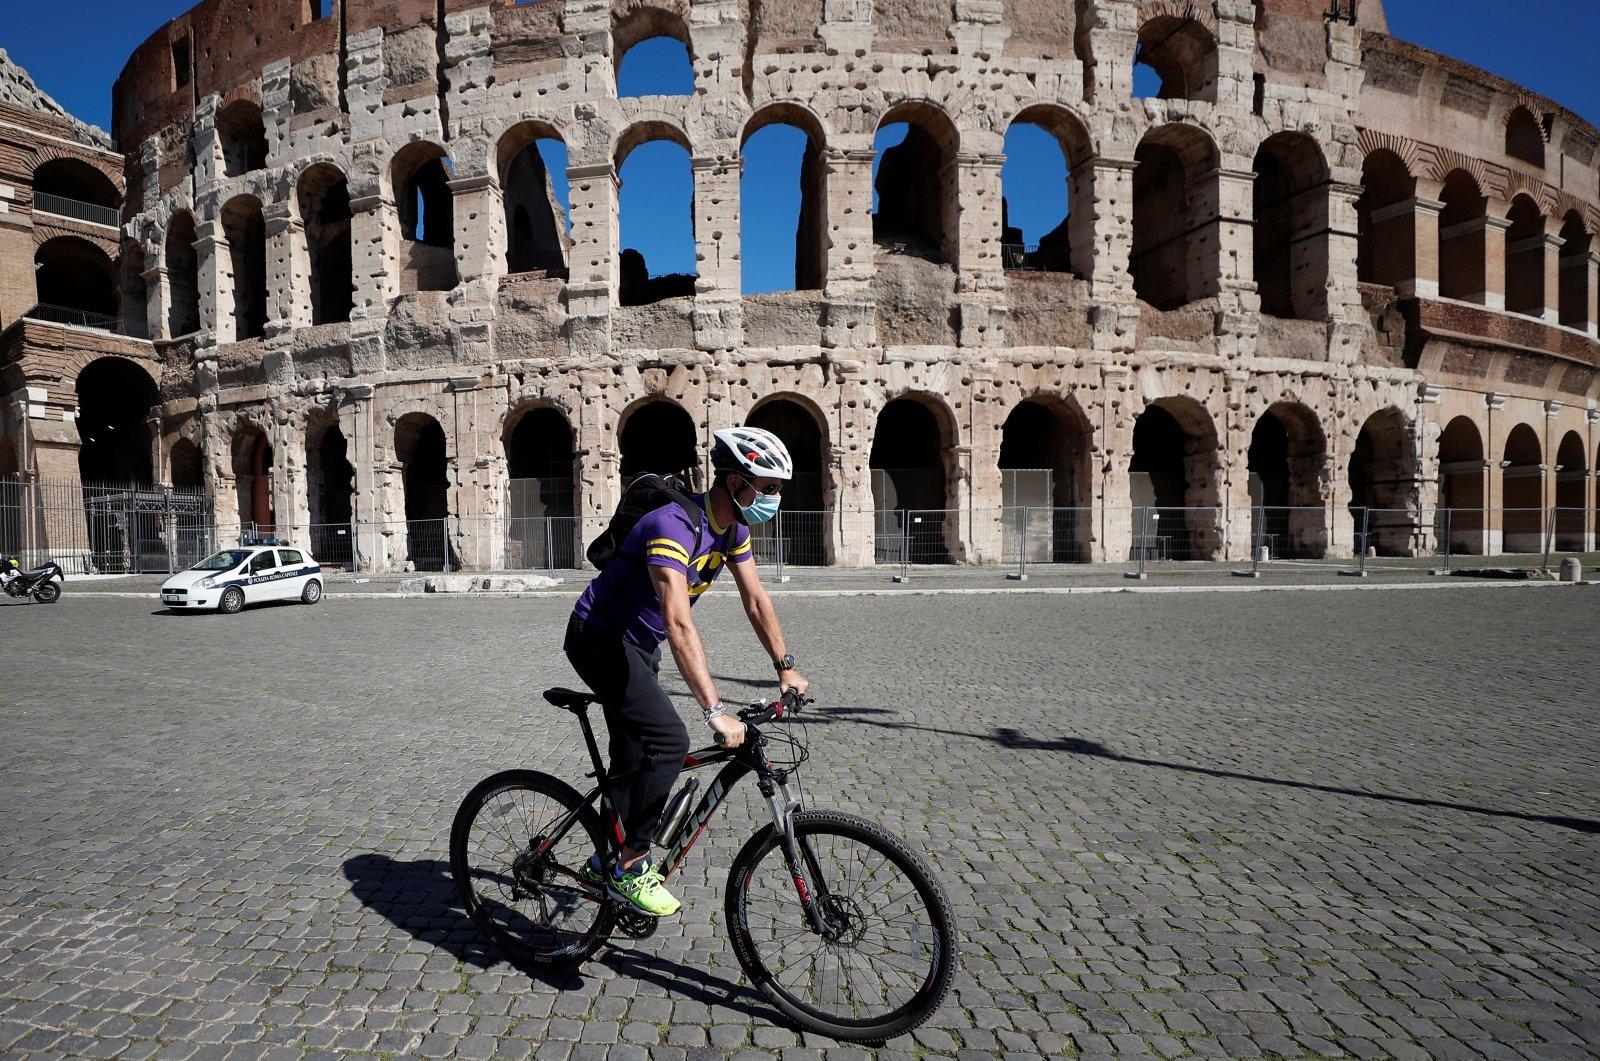 A man wearing a protective face mask cycles past the Colosseum as local authorities in the Italian capital Rome ordered face coverings to be worn at all times outdoors, in an effort to counter the spread of the coronavirus disease (COVID-19), in Rome, Italy on Oct. 8, 2020. (Reuters Photo)